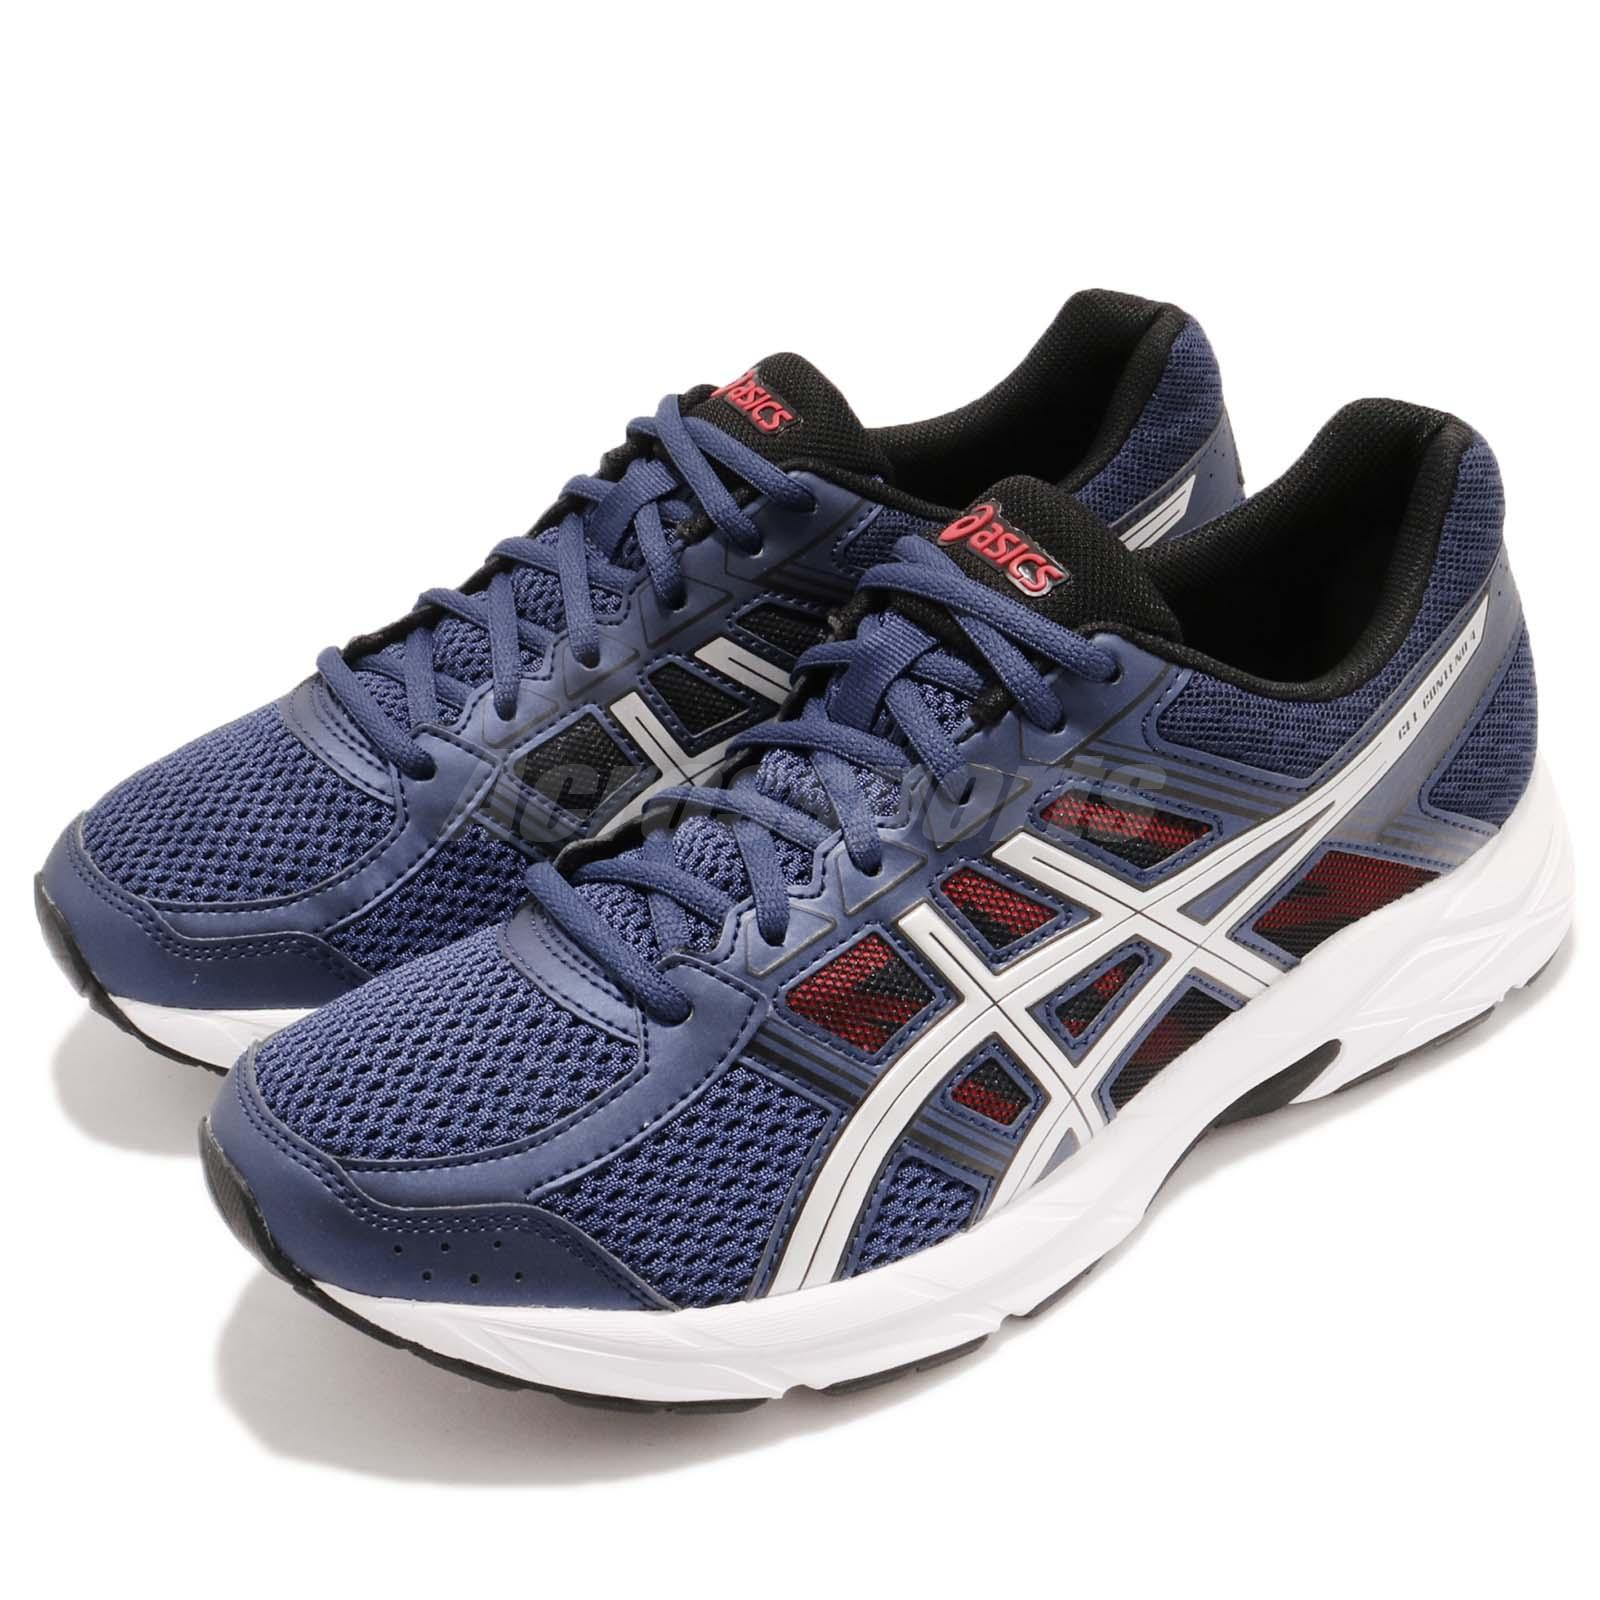 gel contend 4 asics trainers